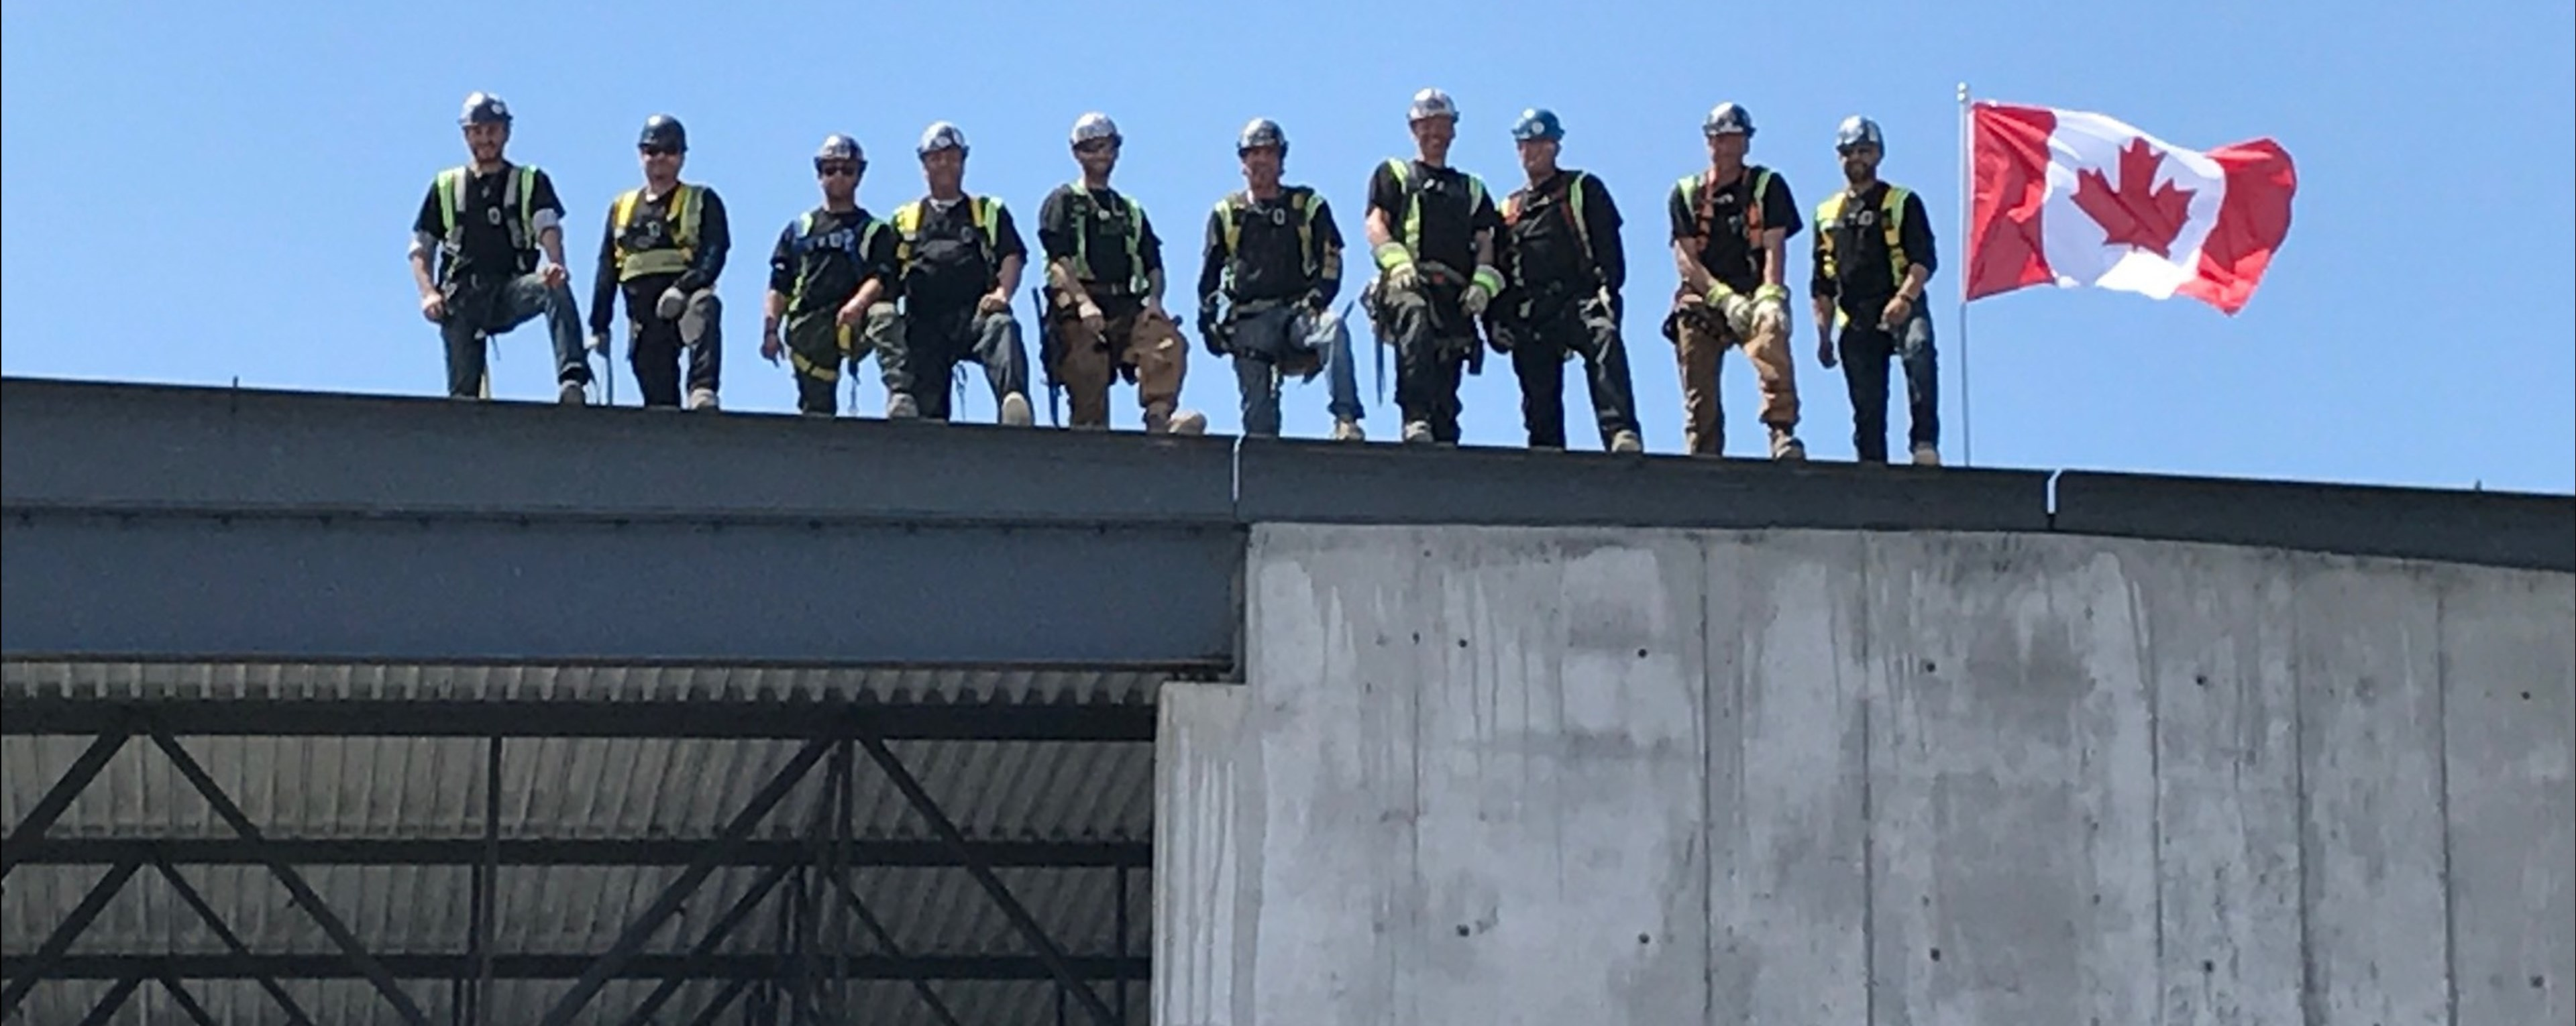 Workers on a Roof